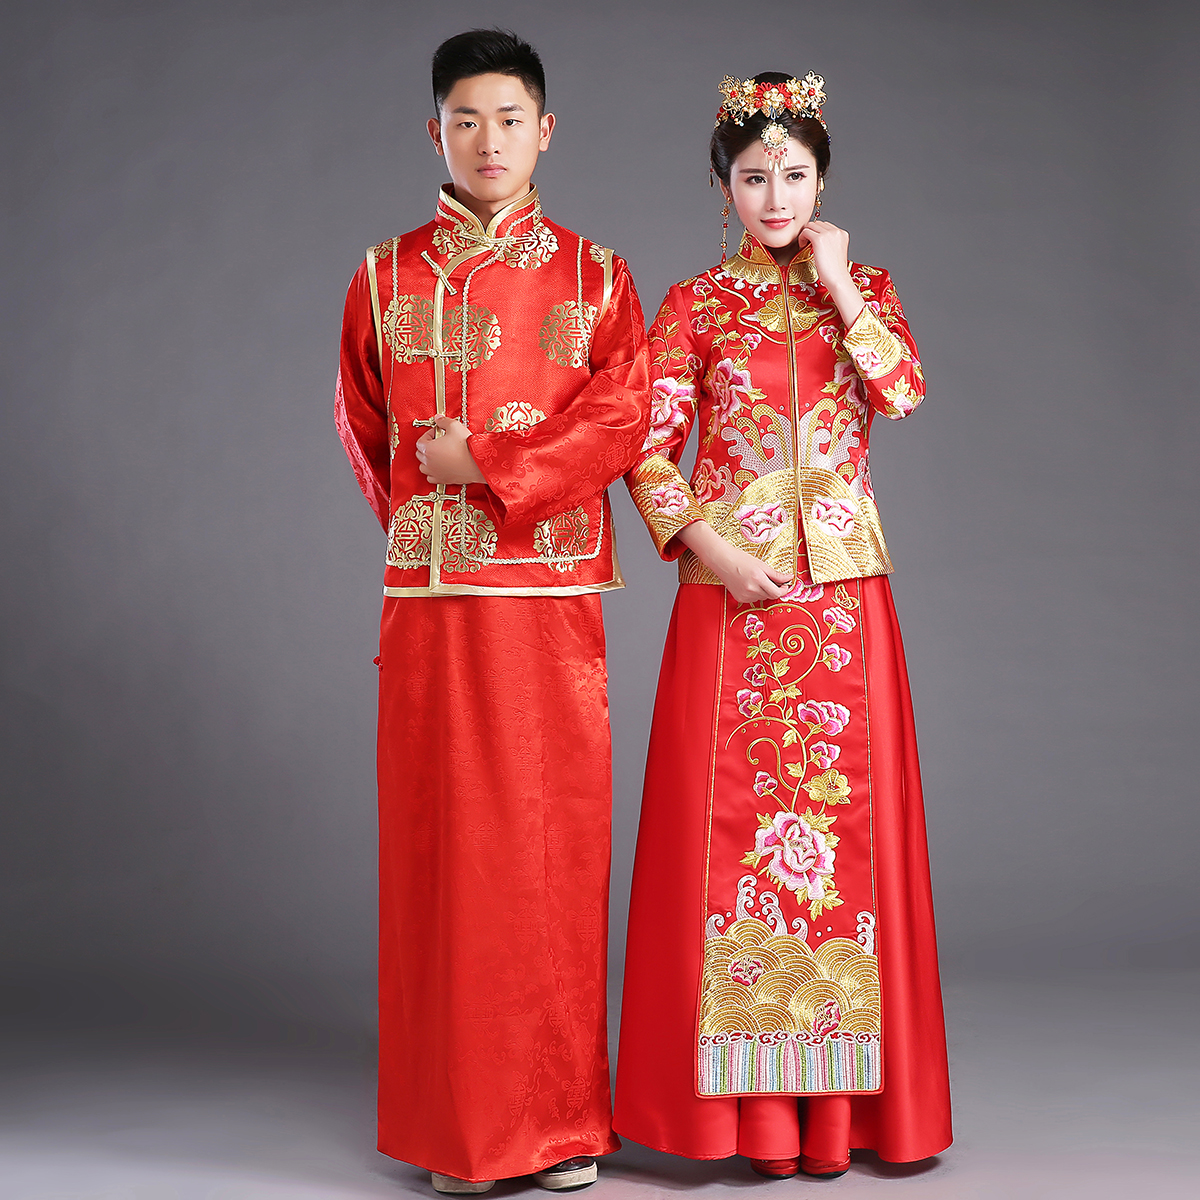 Traditional: Chinese Traditional Bride Clothing Pratensis Style Wedding